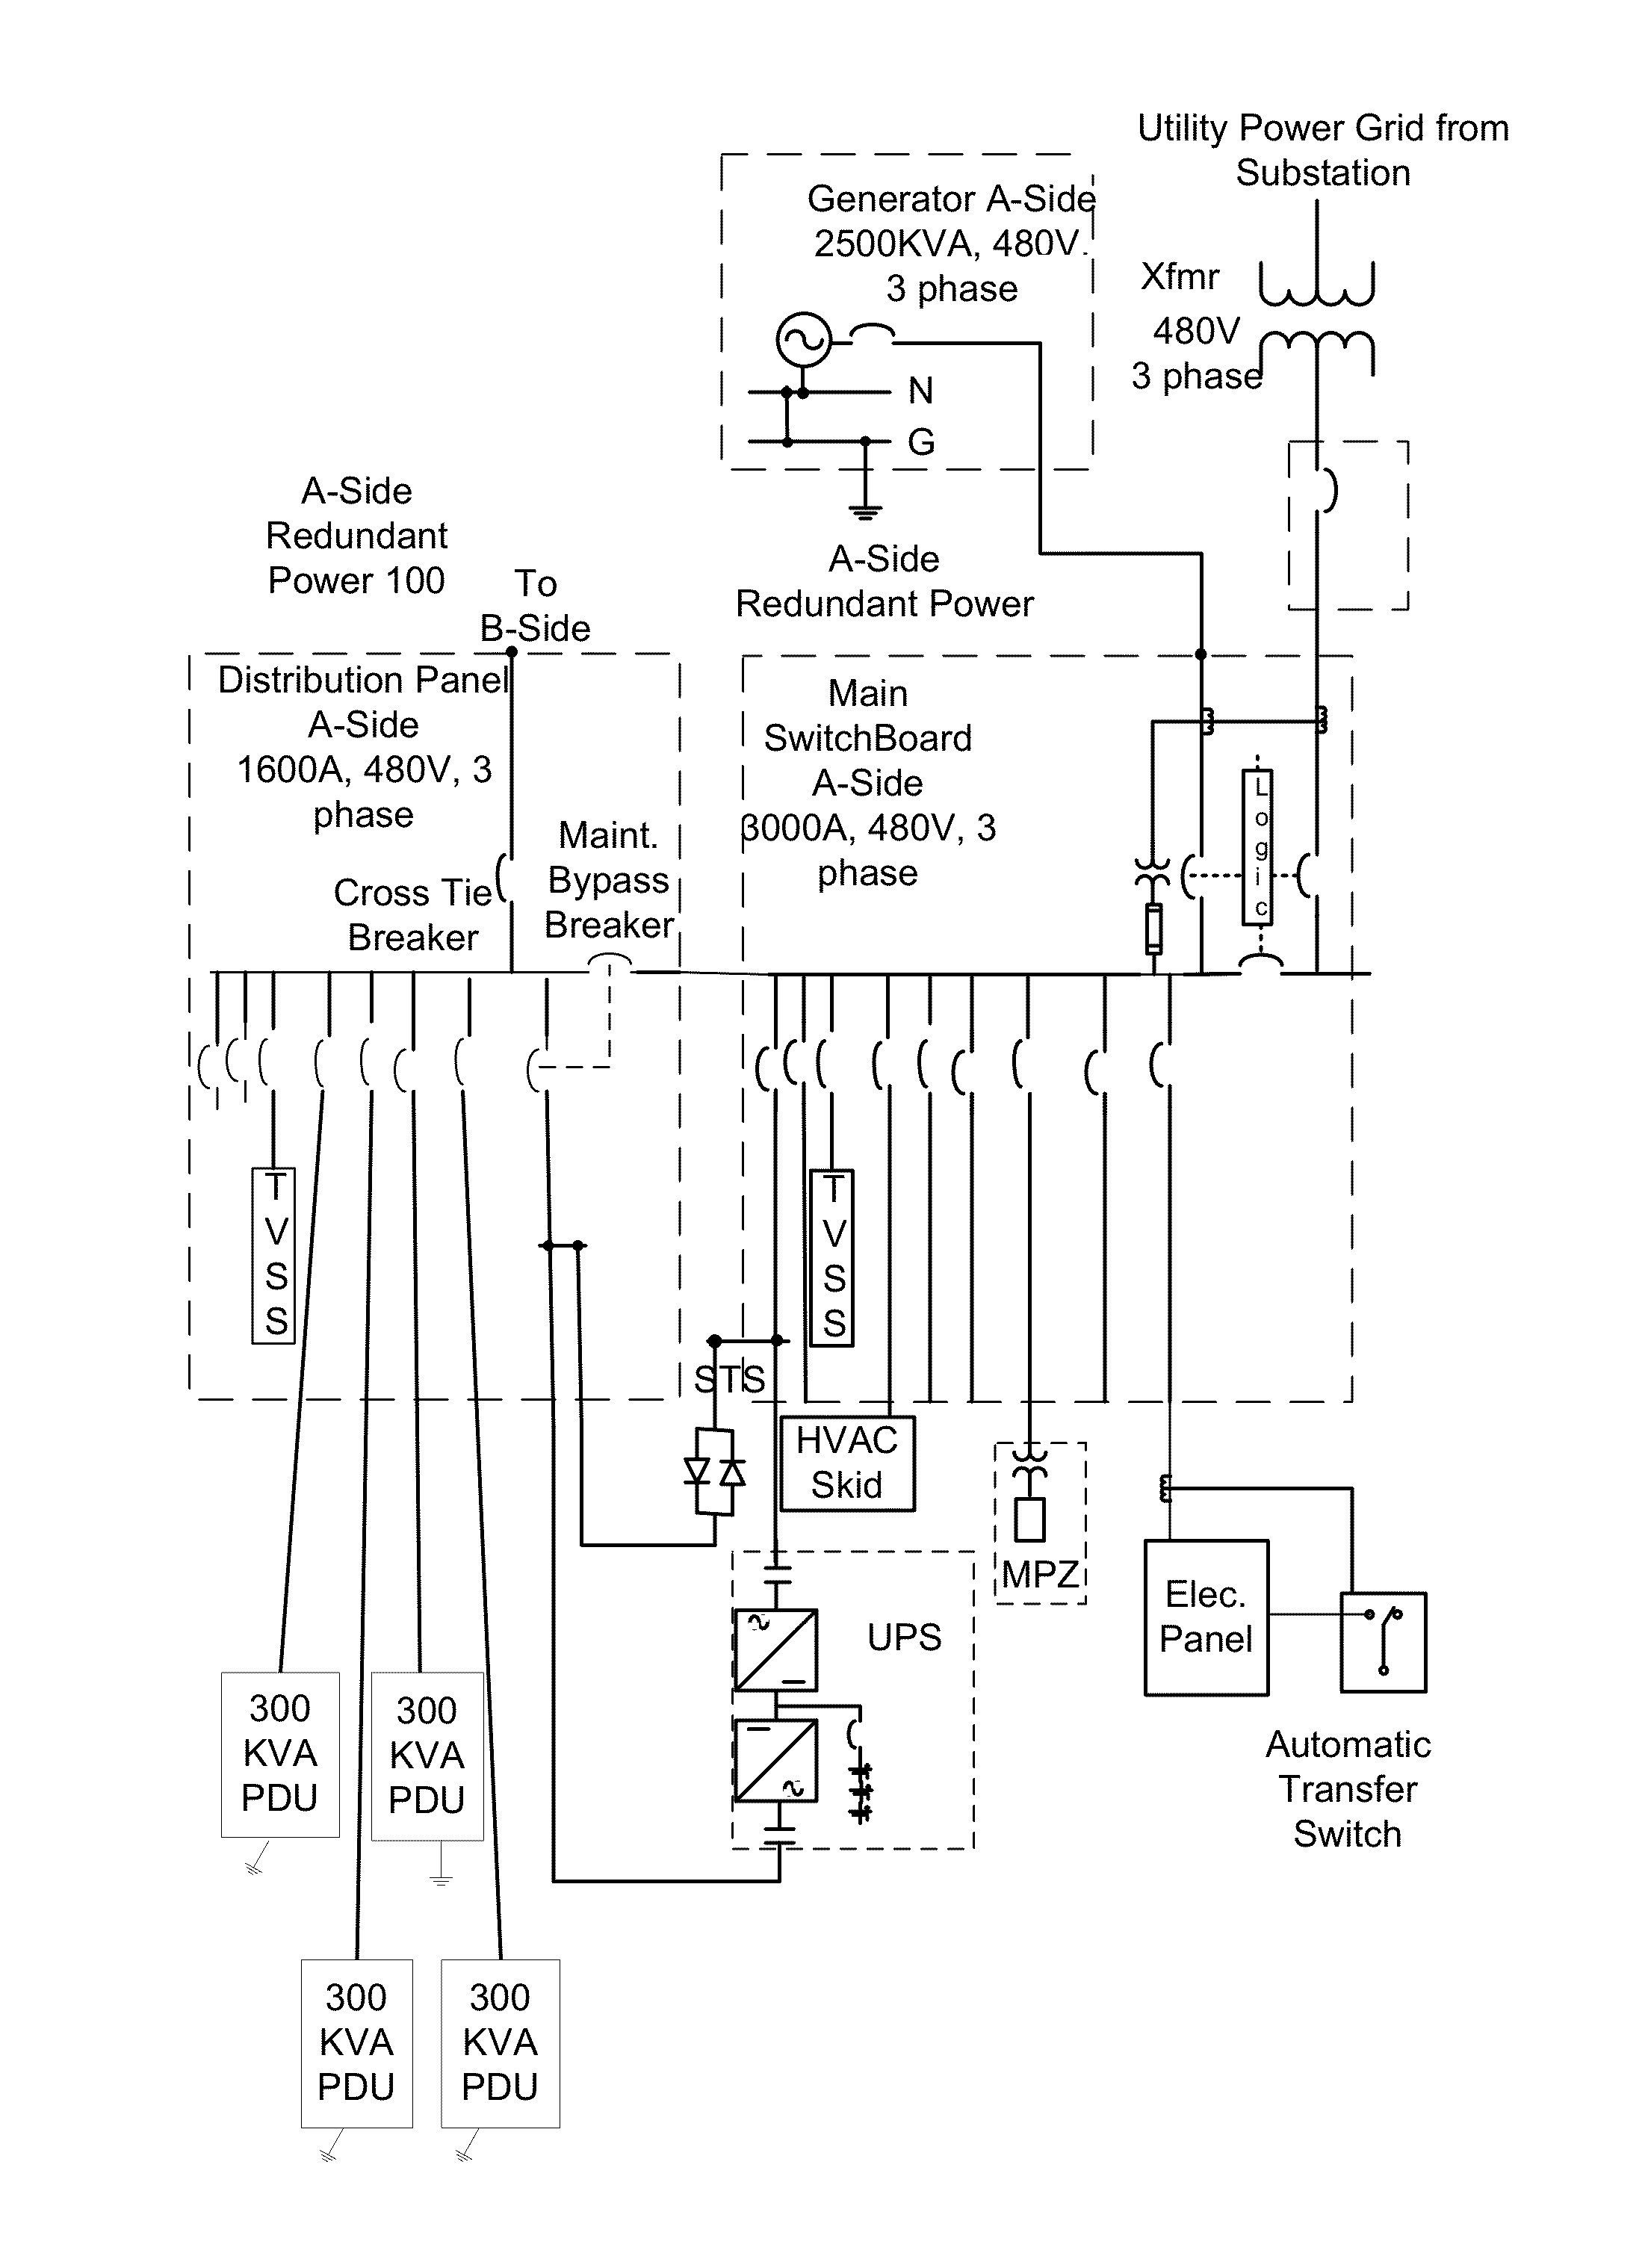 Unique Car Ac Wiring Diagram Diagram Wiringdiagram Diagramming Diagramm Visuals Visualisation Graphical Check M Circuit Diagram Diagram Lighting Diagram